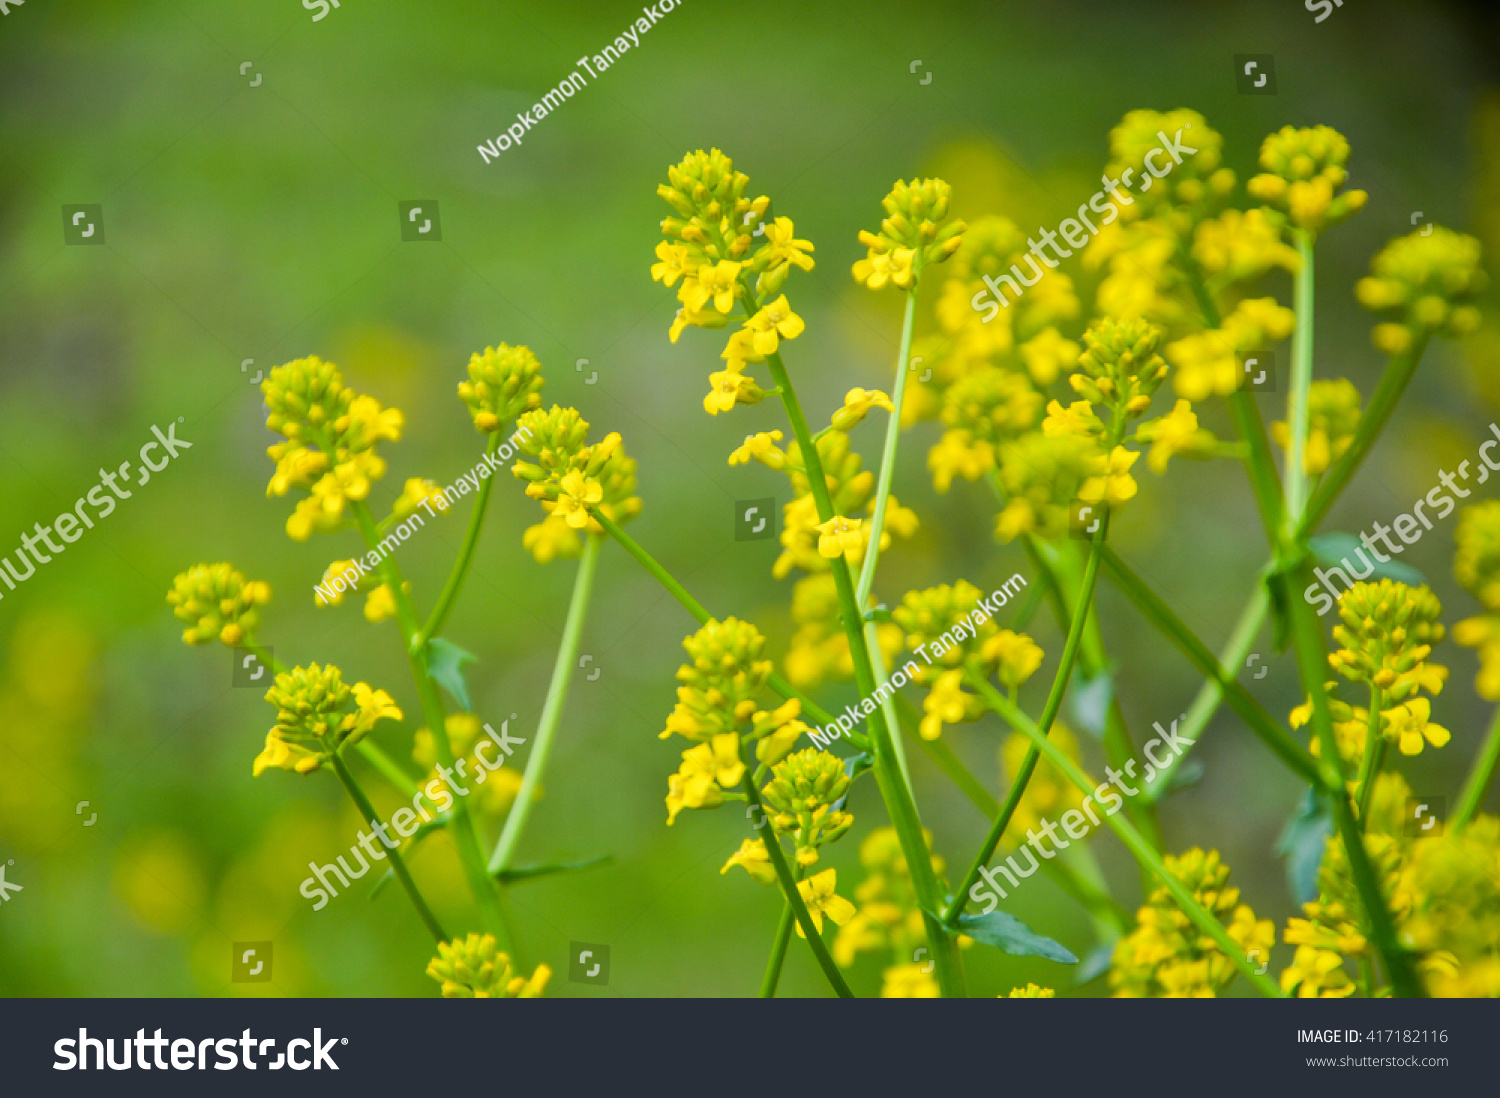 Royalty Free Yellow Rocket Weed In Blurry Background 417182116